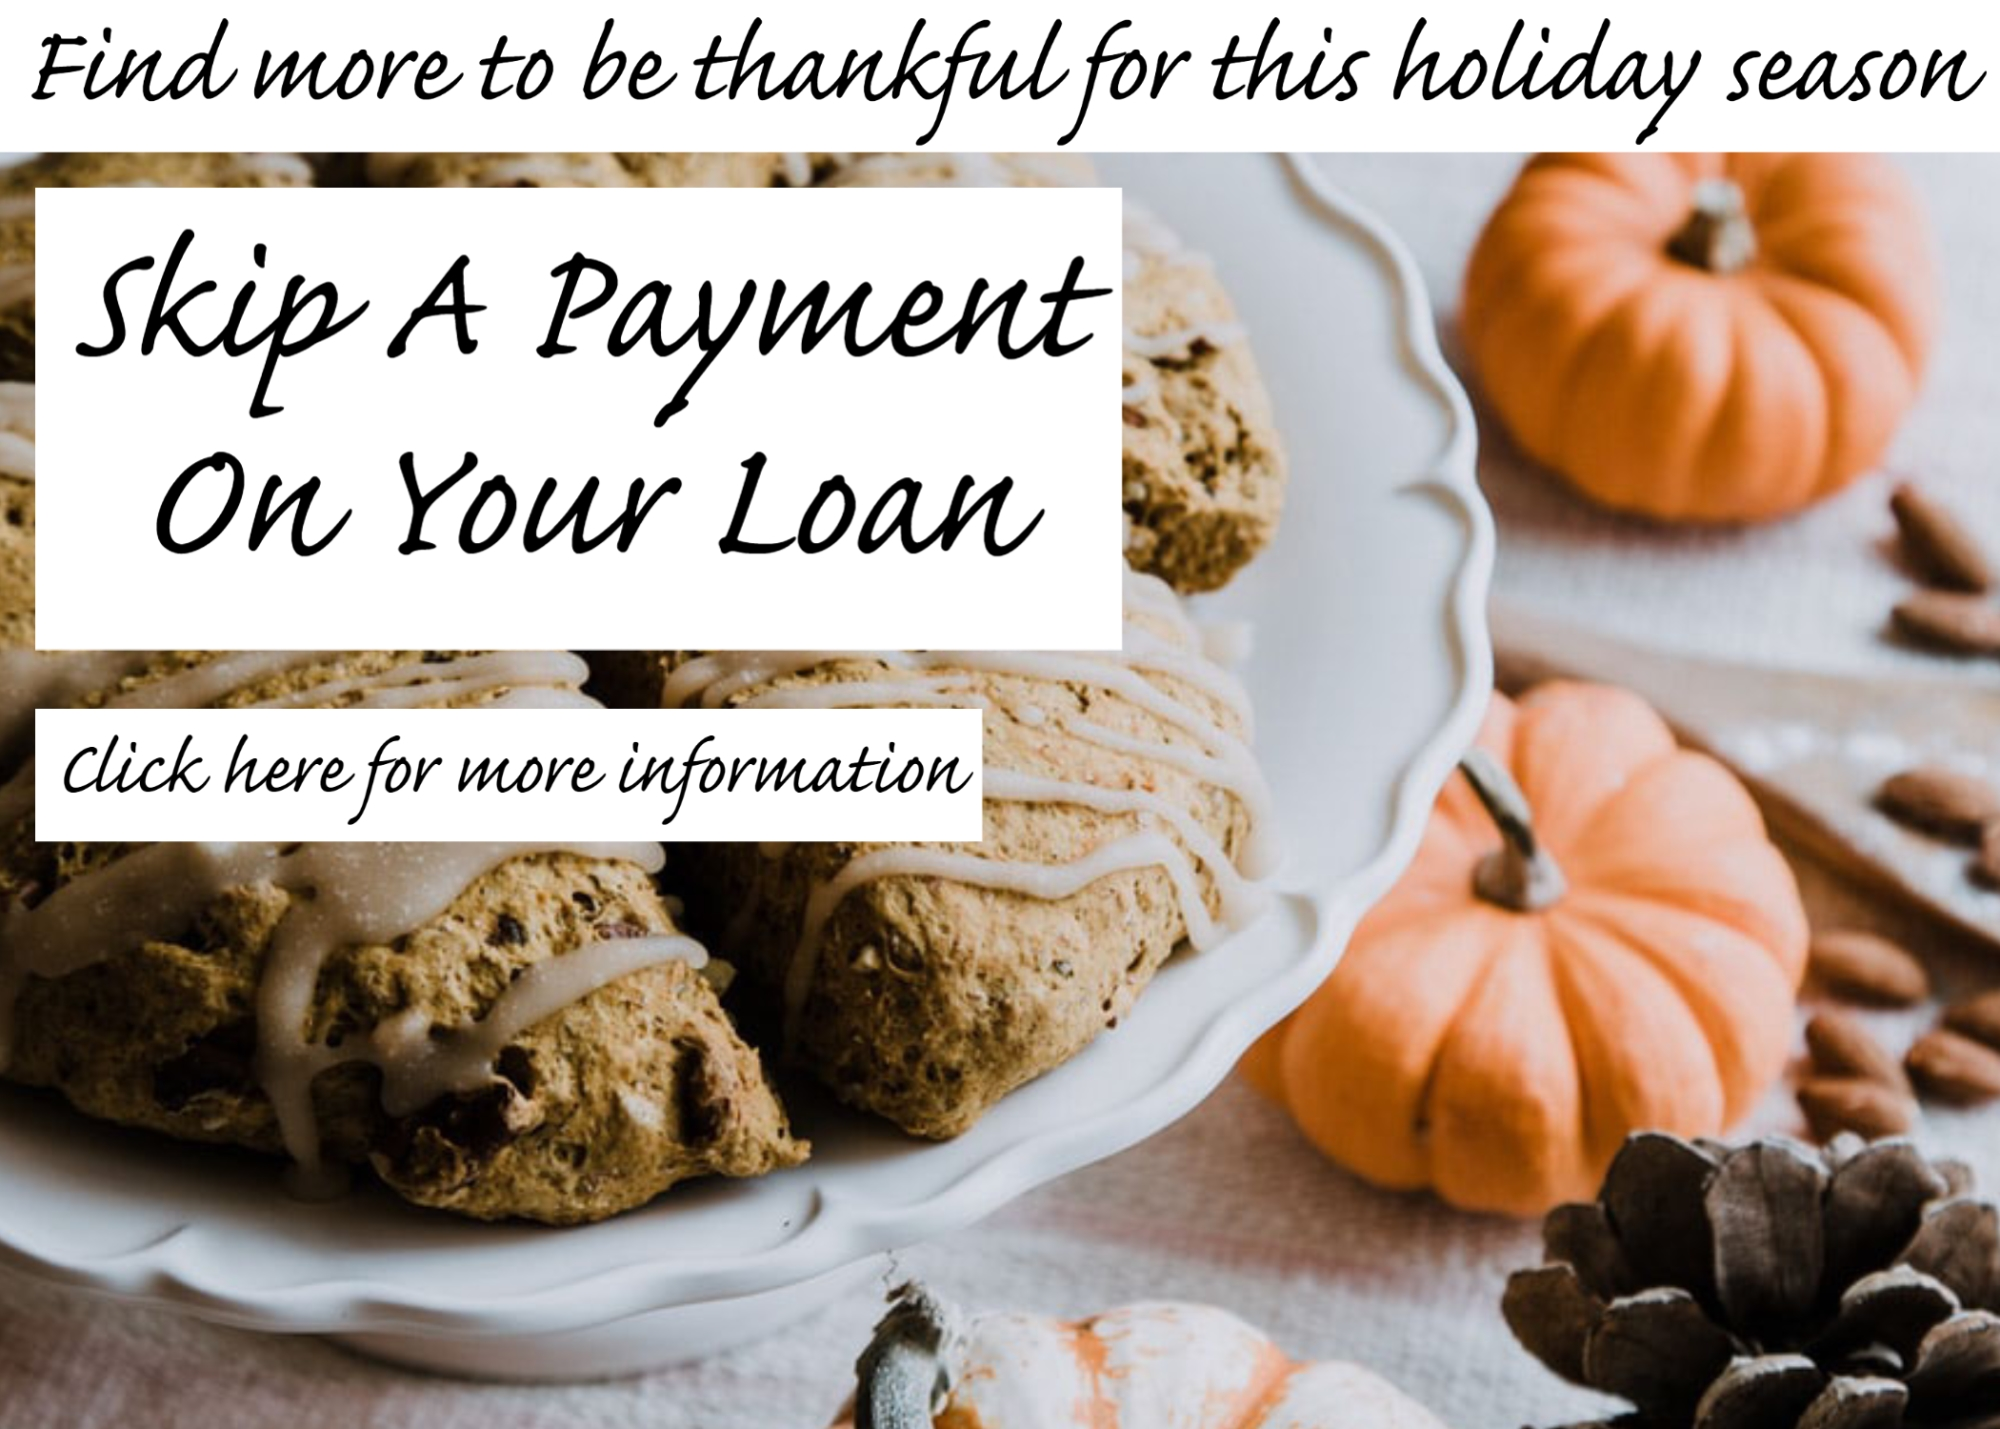 Skip A Payment on your loan. Click for more information.